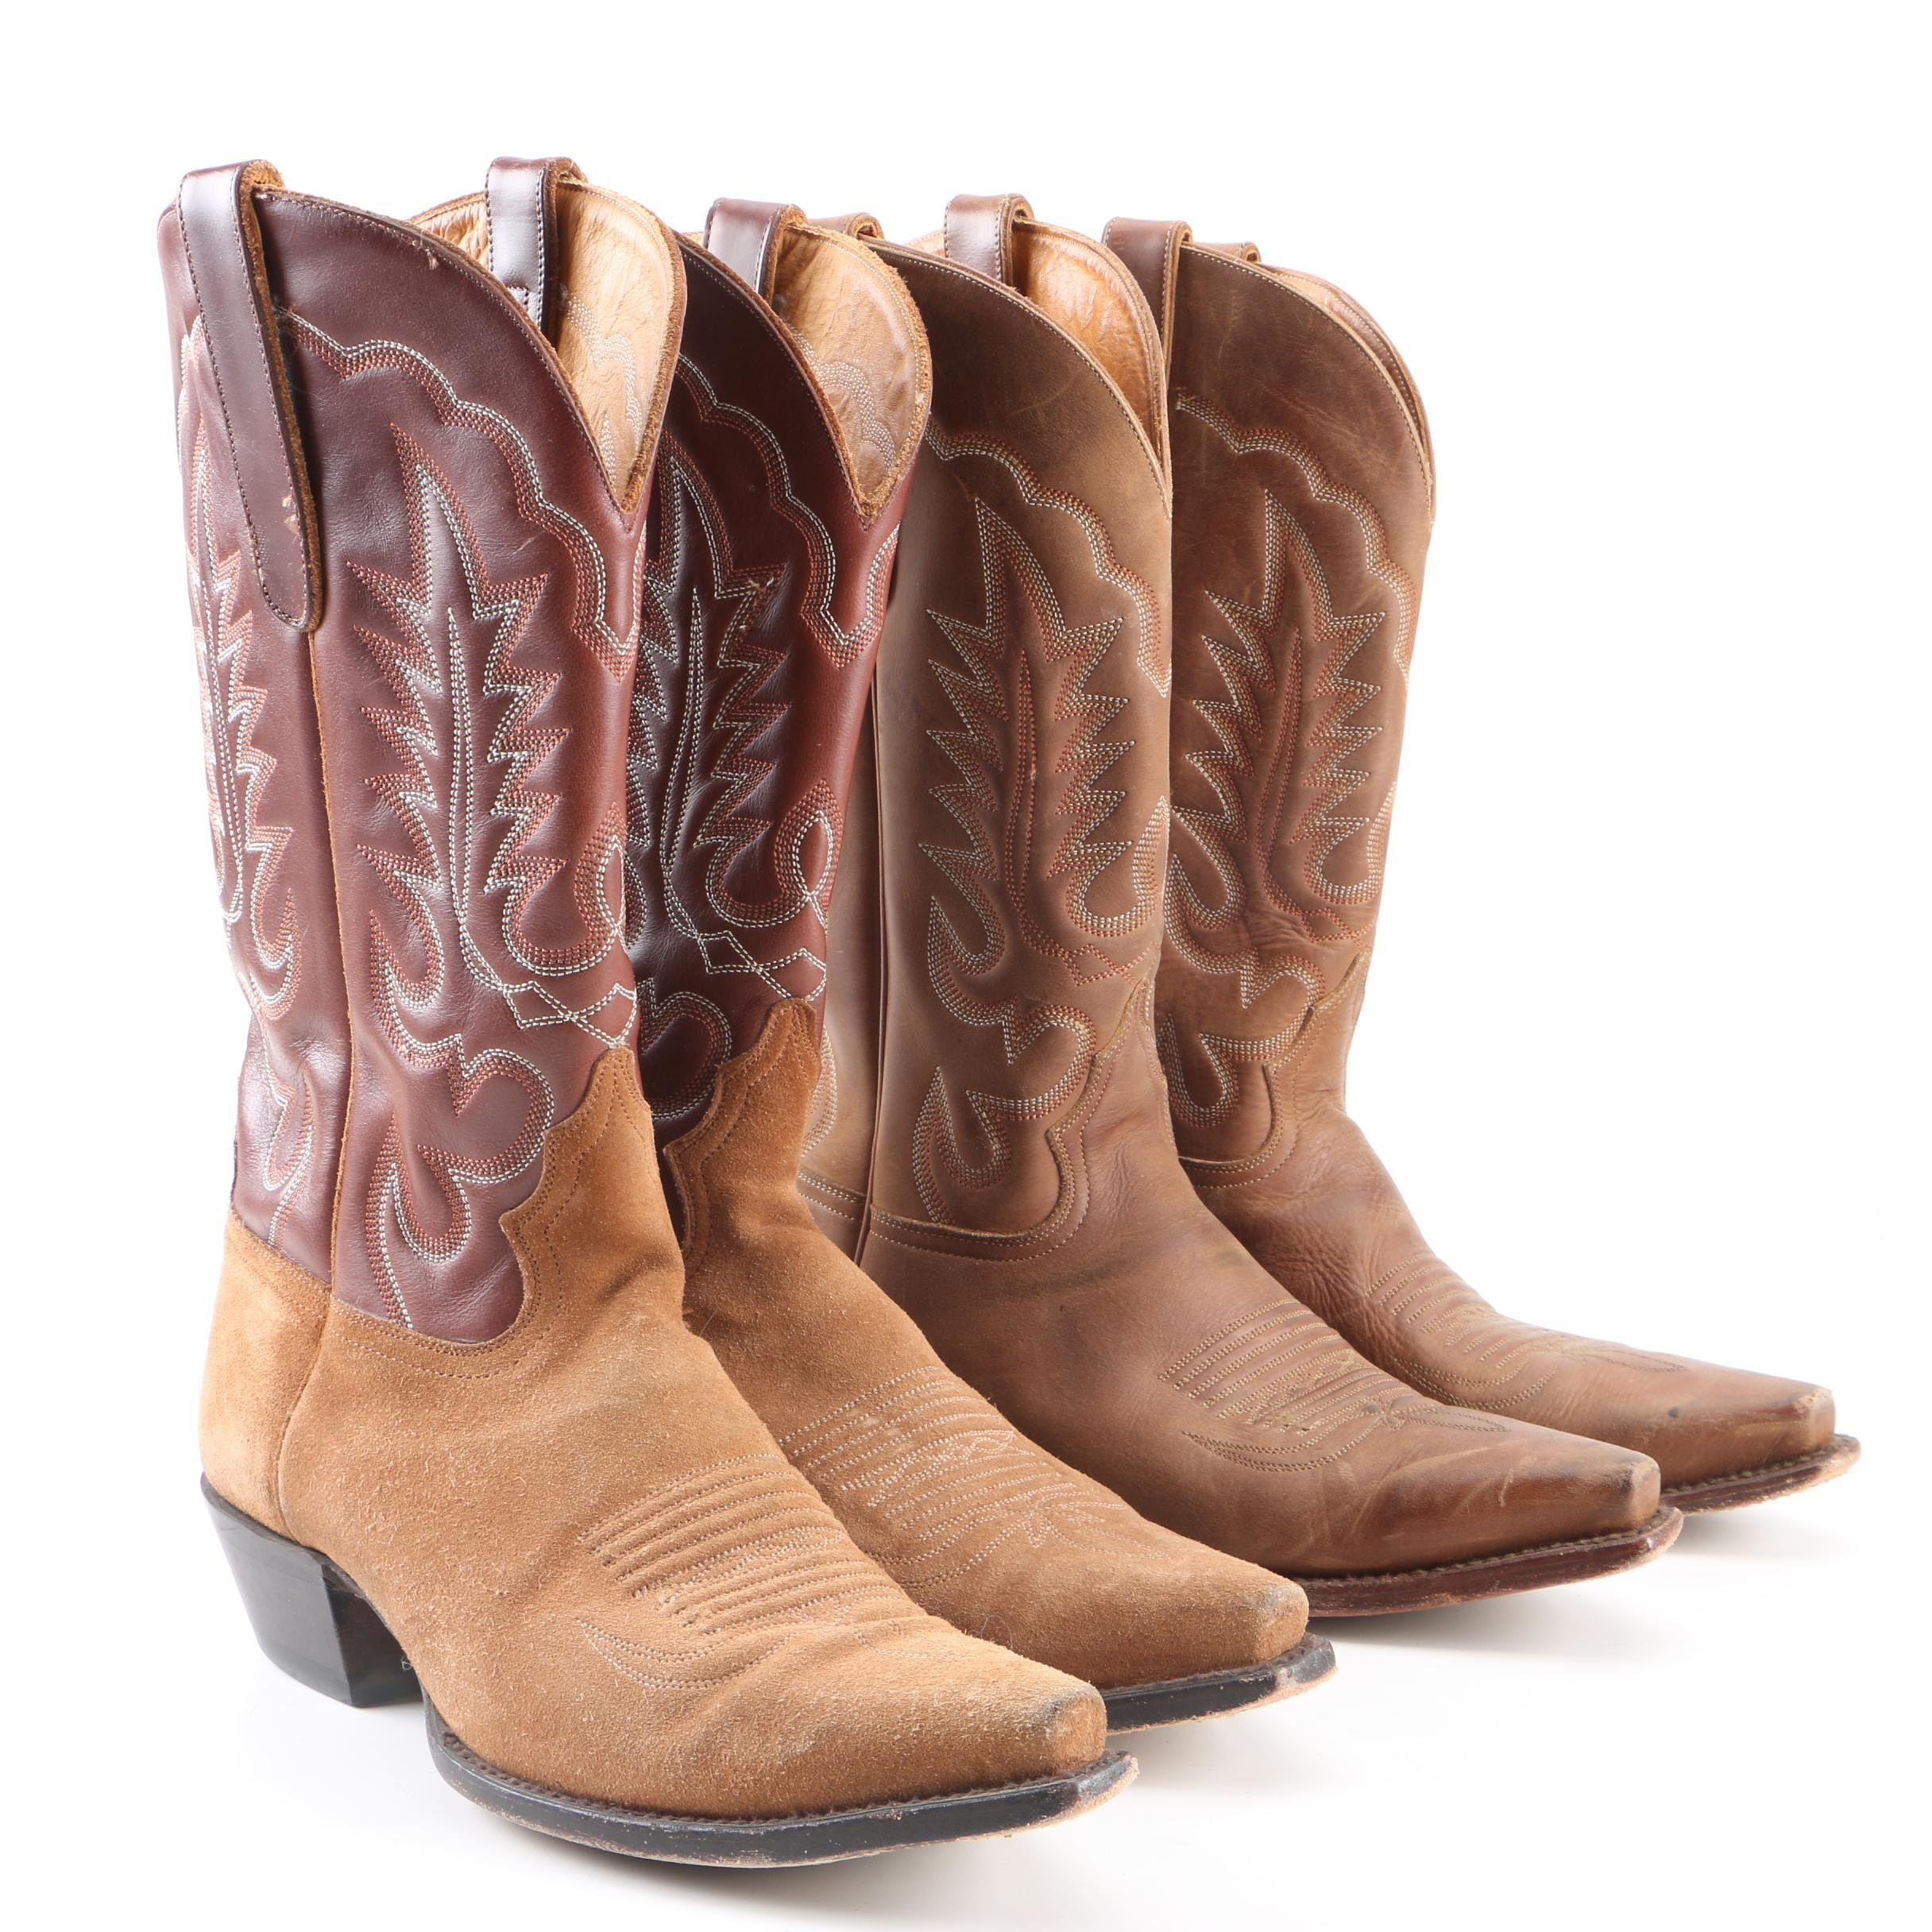 Men's Brown Leather and Suede Cowboy Boots